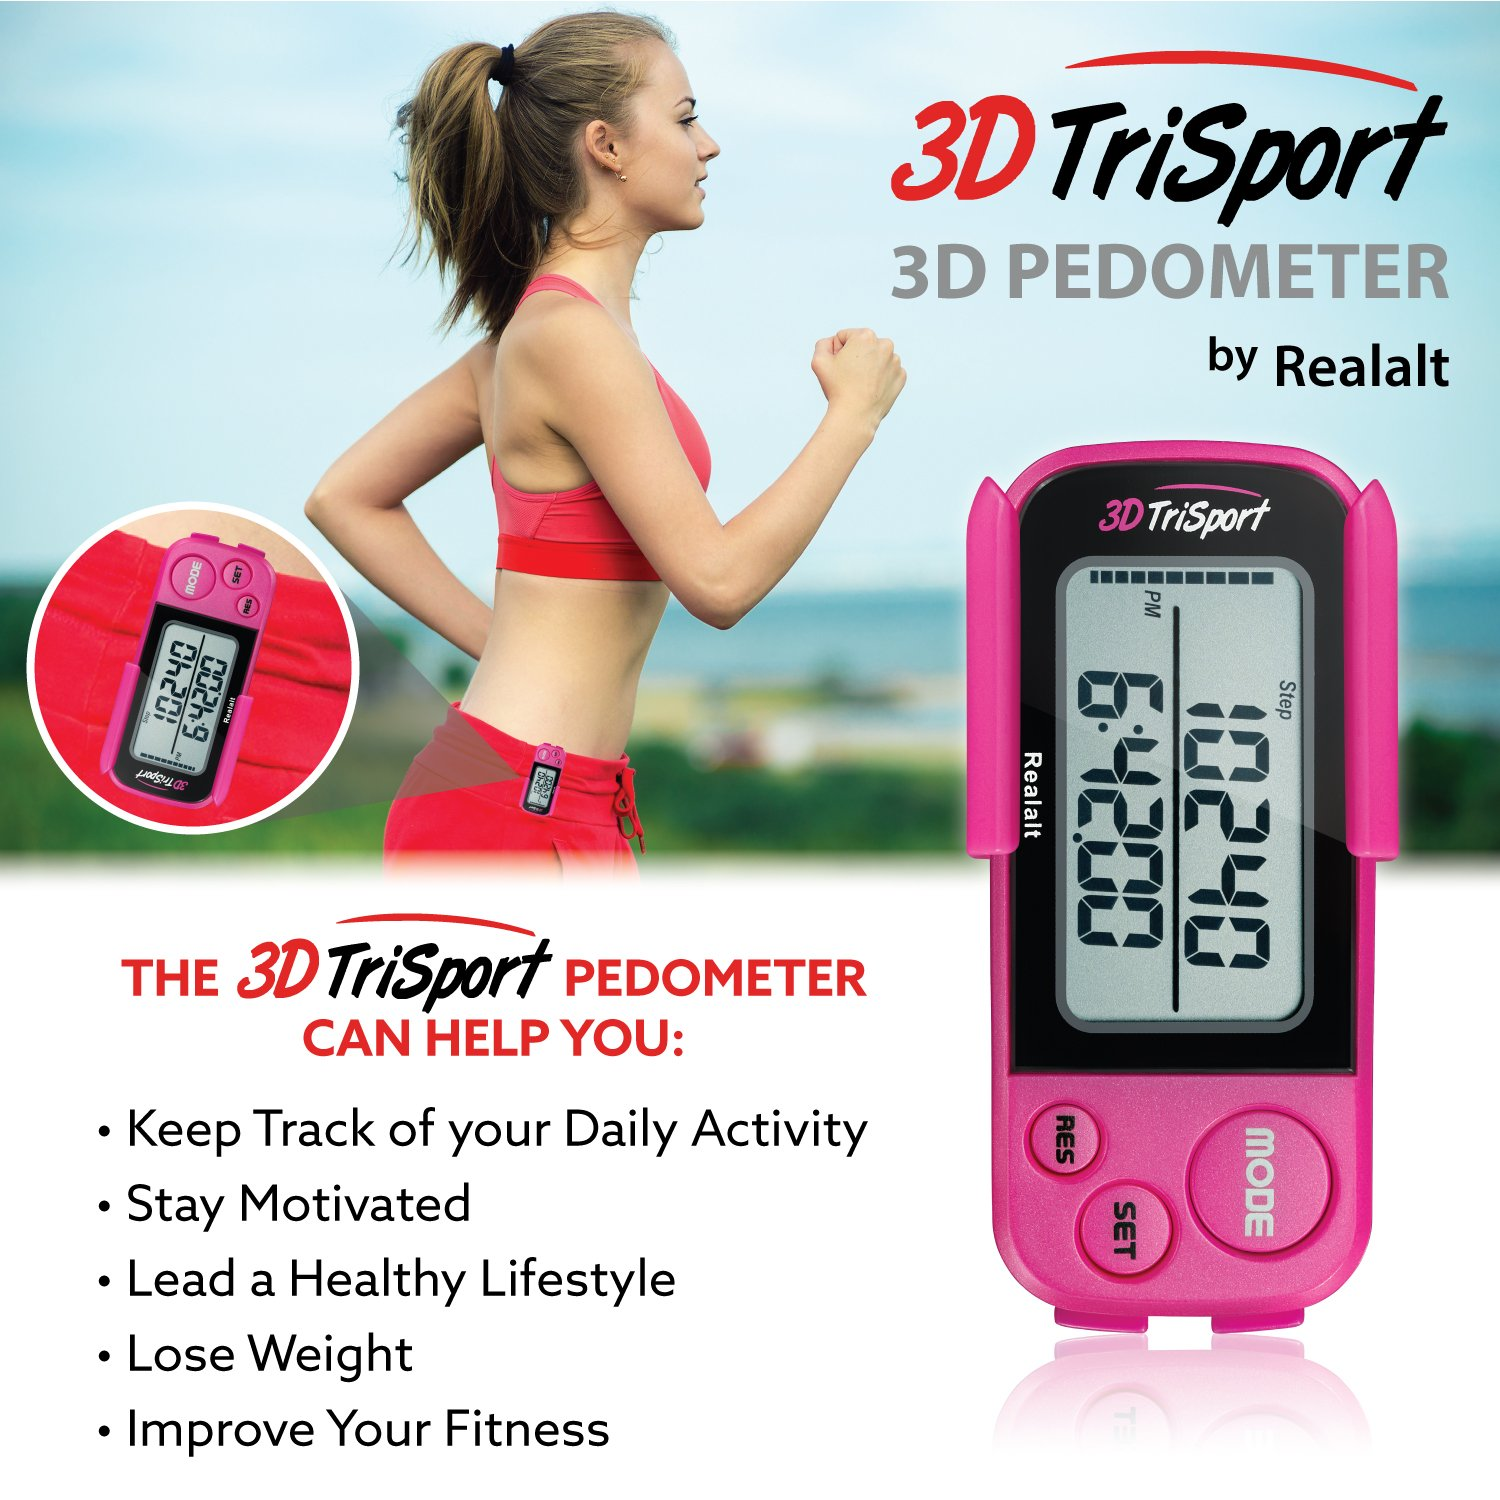 Exercise Time Exercise Time Calorie Counter 30 Days Memory Accurate Step Counter Free eBook Stealth Black RR-12-14-4 Realalt 3DTriSport Walking 3D Pedometer with Clip and Strap Walking Distance Miles//Km Daily Target Monitor